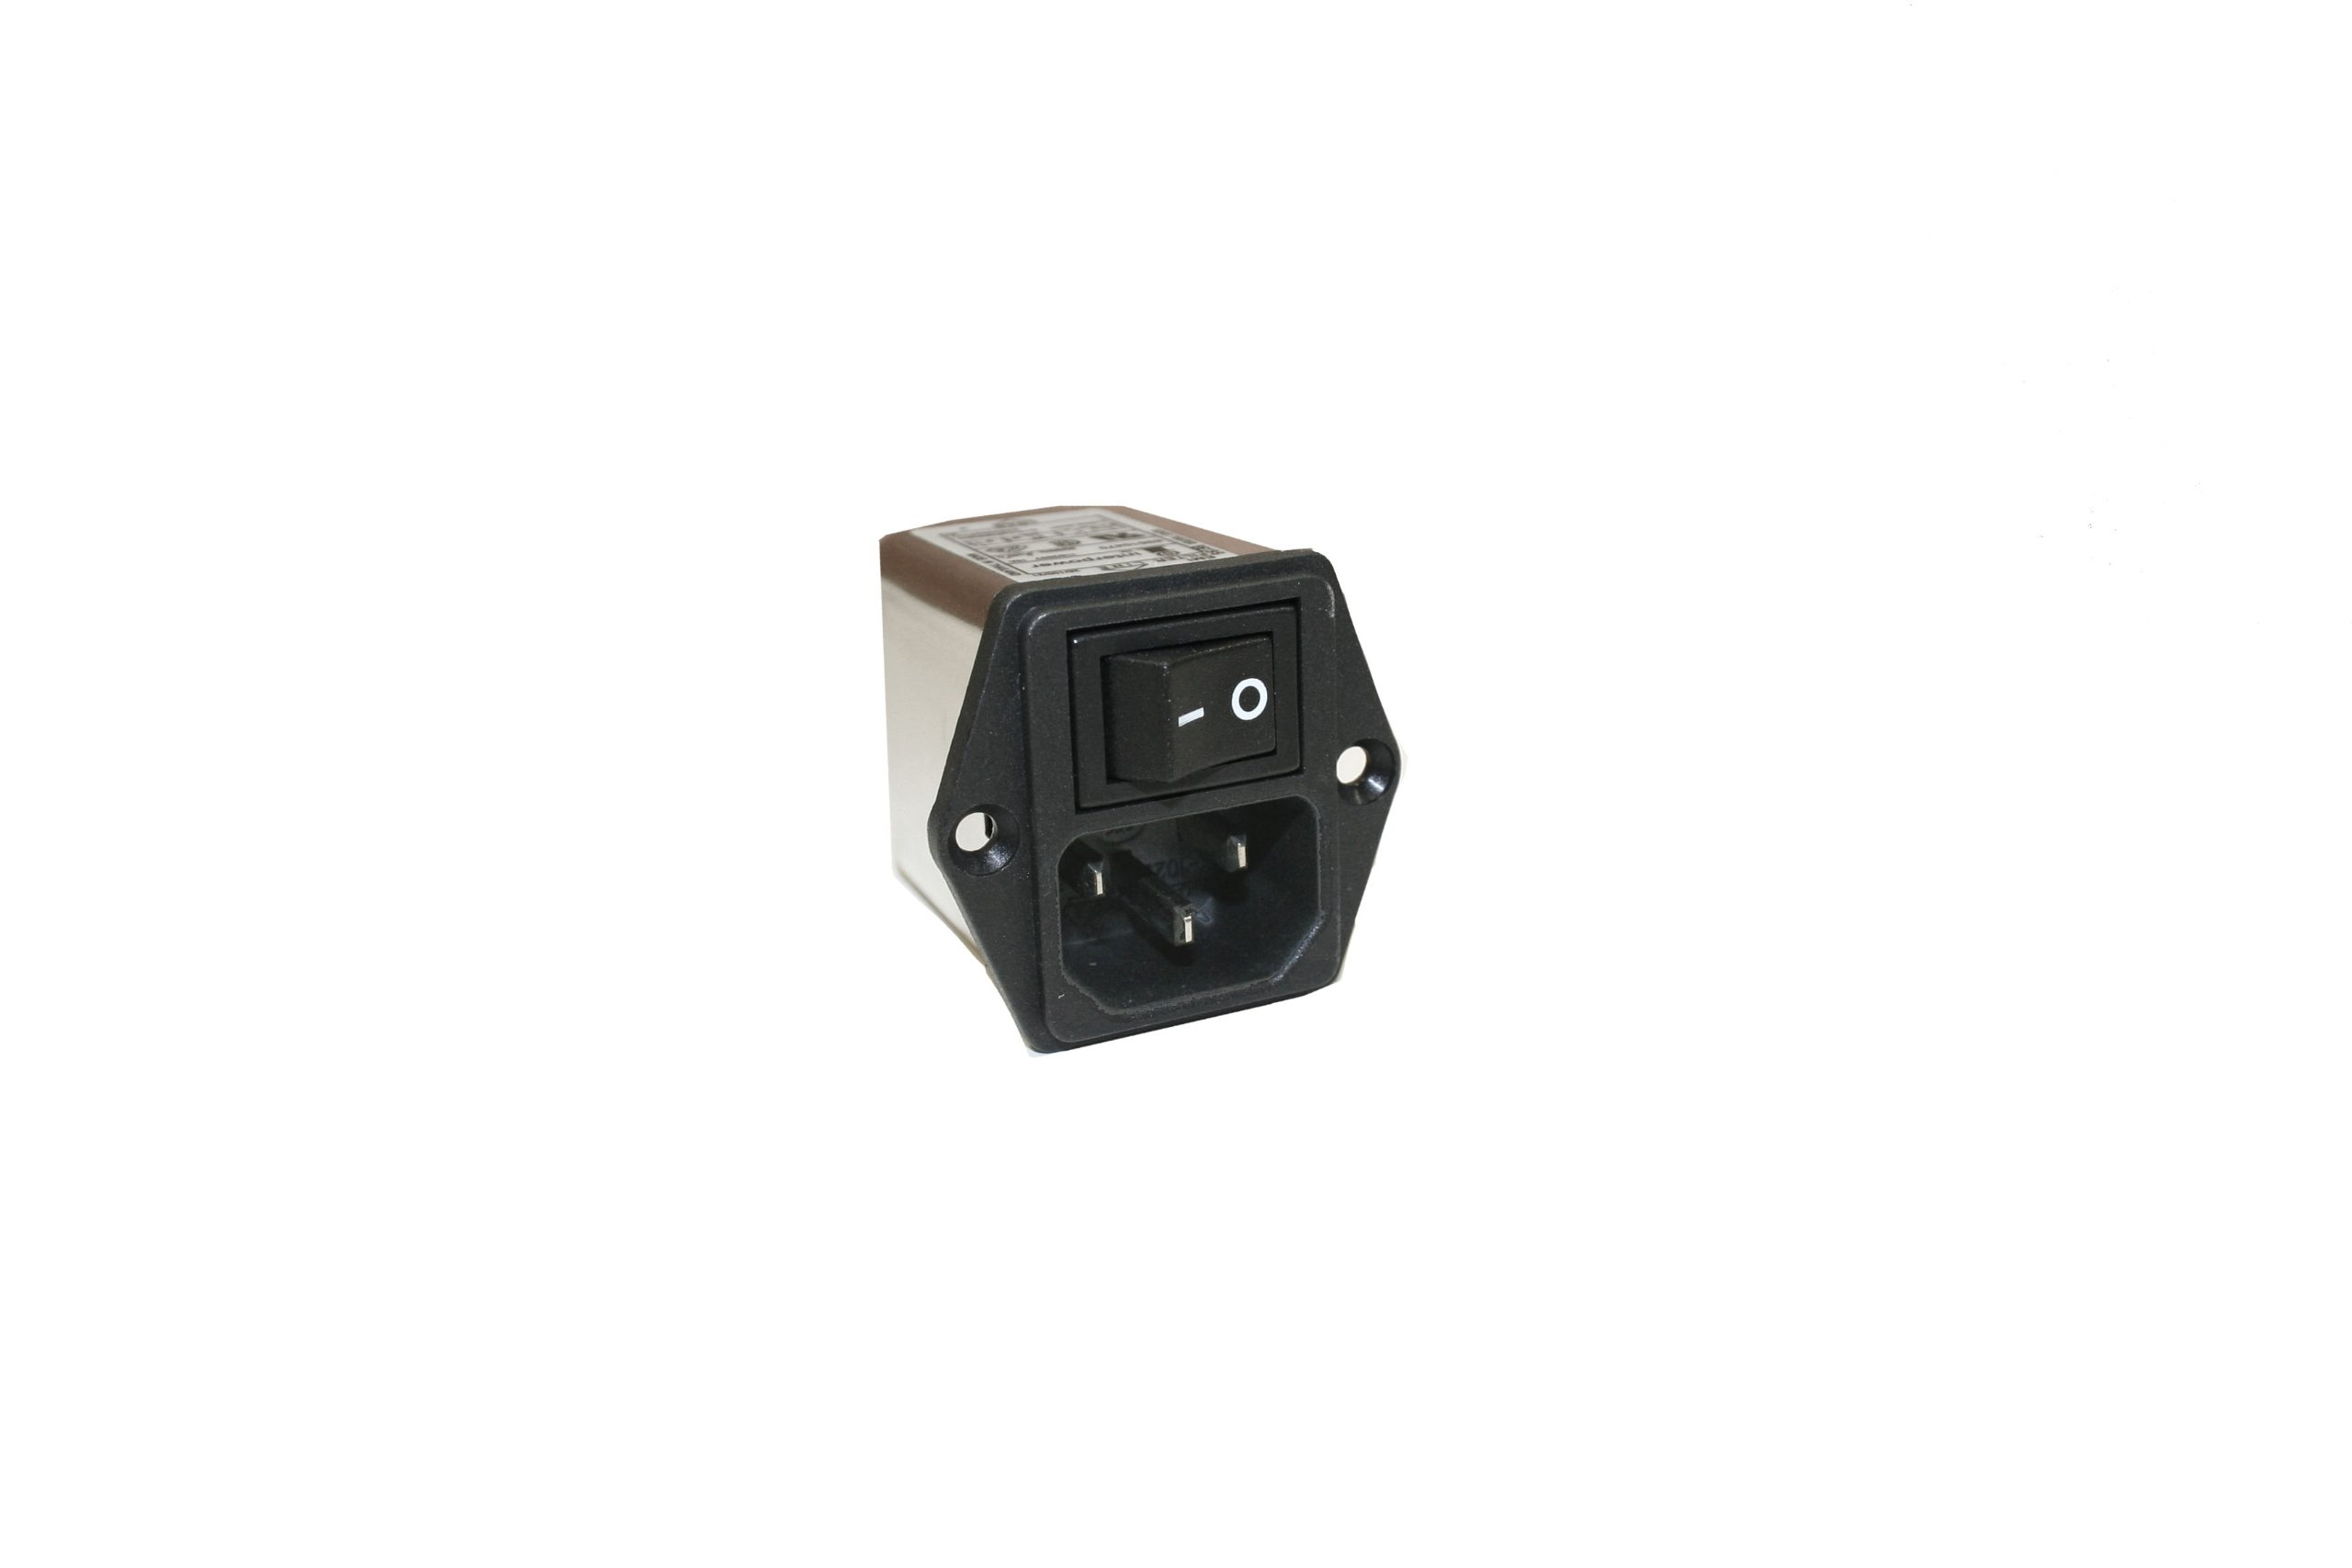 Interpower 83510470 Three Function Module, C14 Inlet, Switch, Filter, 10A Current Rating, 115/250VAC Voltage Rating